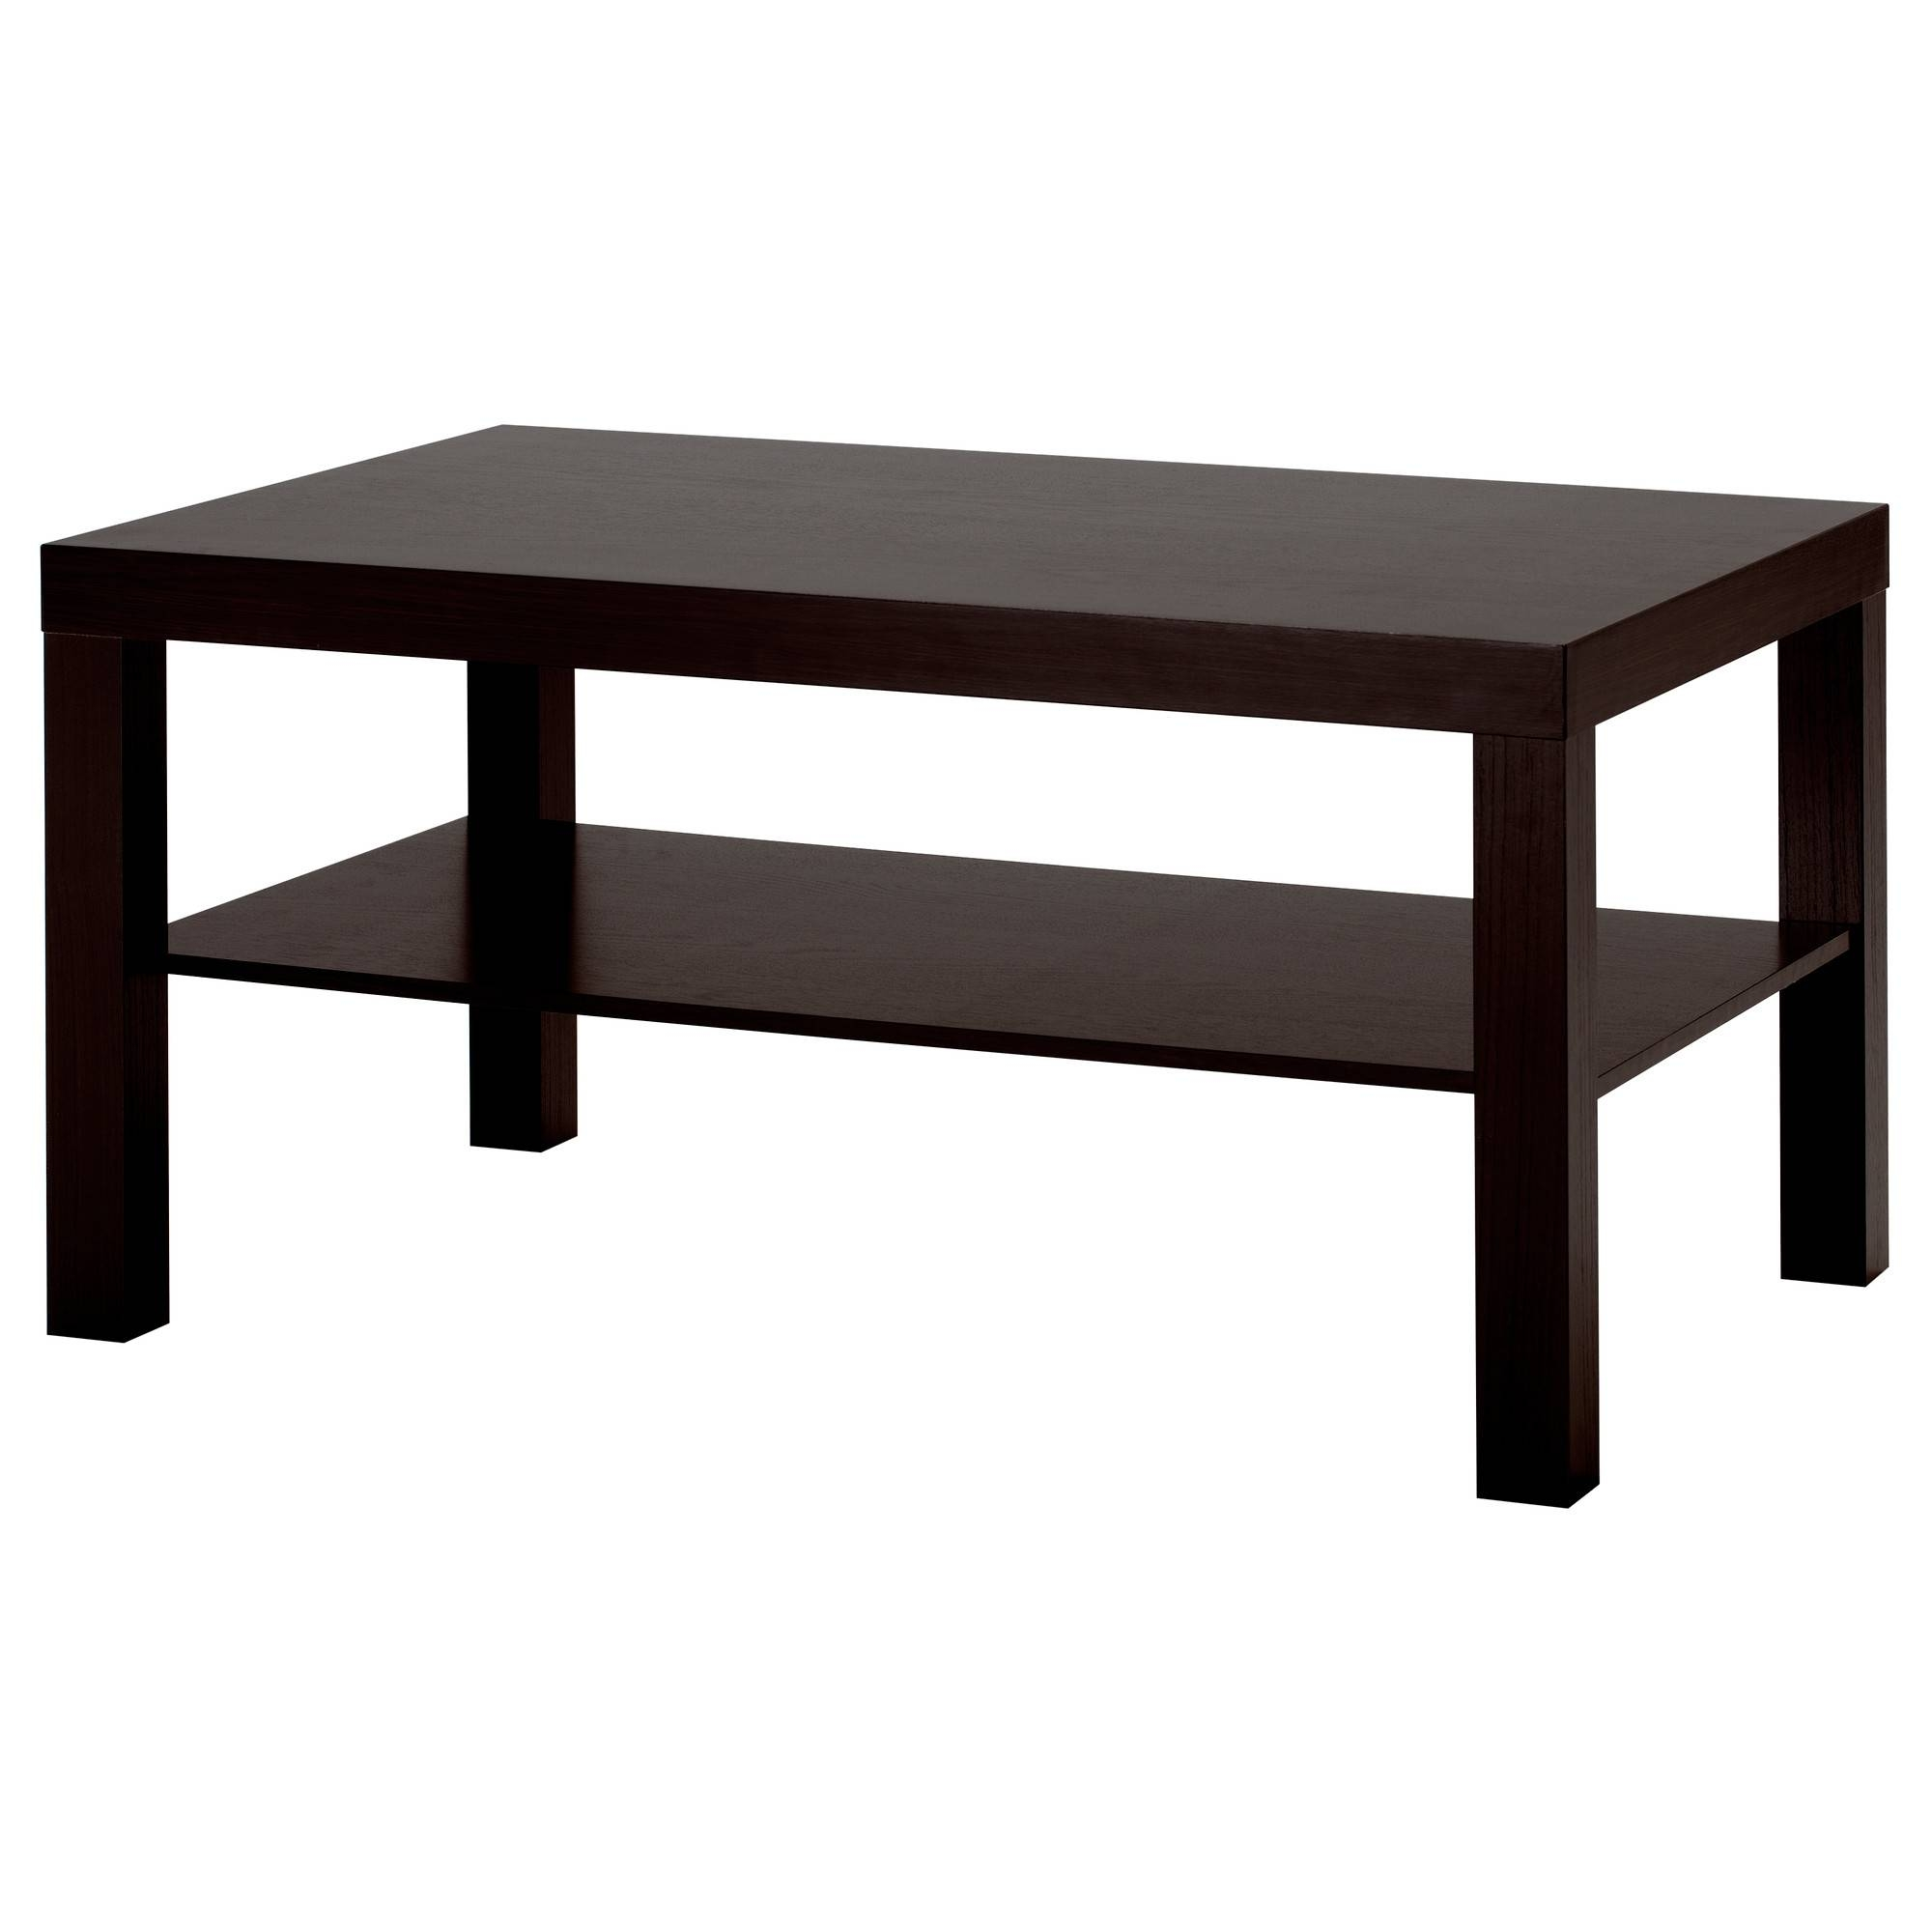 "Lack Coffee Table - White, 35X22X18"" - Ikea within Glass And Black Coffee Tables (Image 21 of 30)"